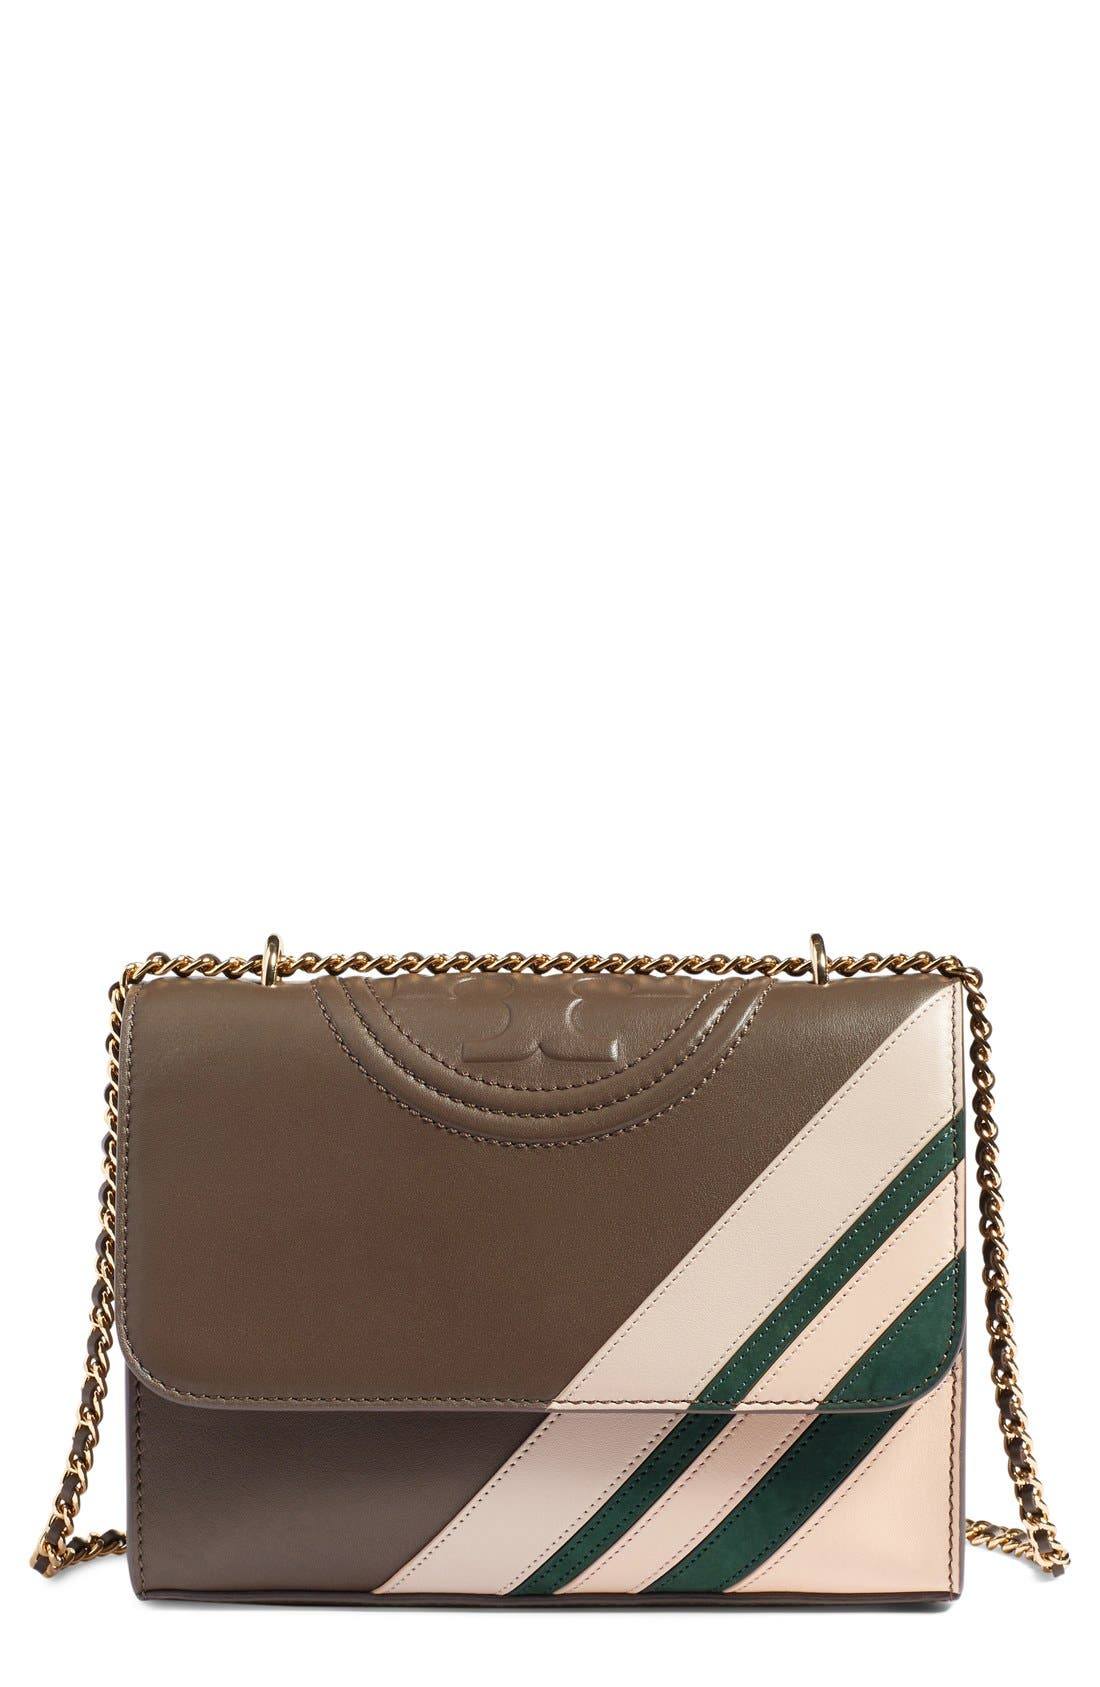 Alternate Image 1 Selected - Tory Burch 'Fleming Stripe' Convertible Crossbody Bag